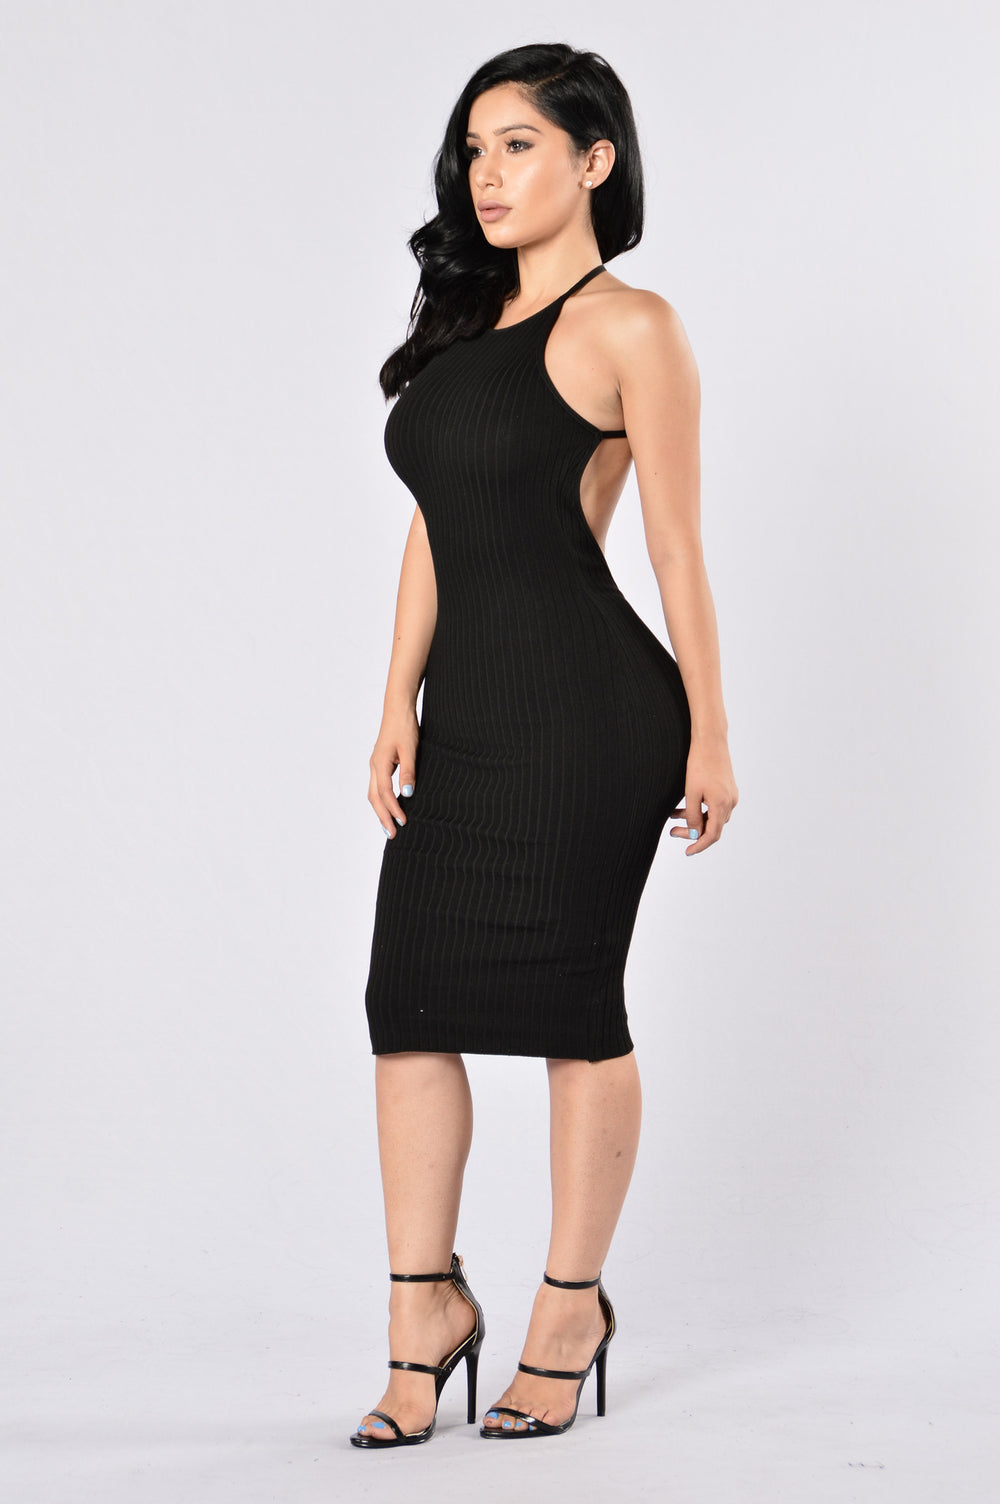 Turn Around Dress - Black